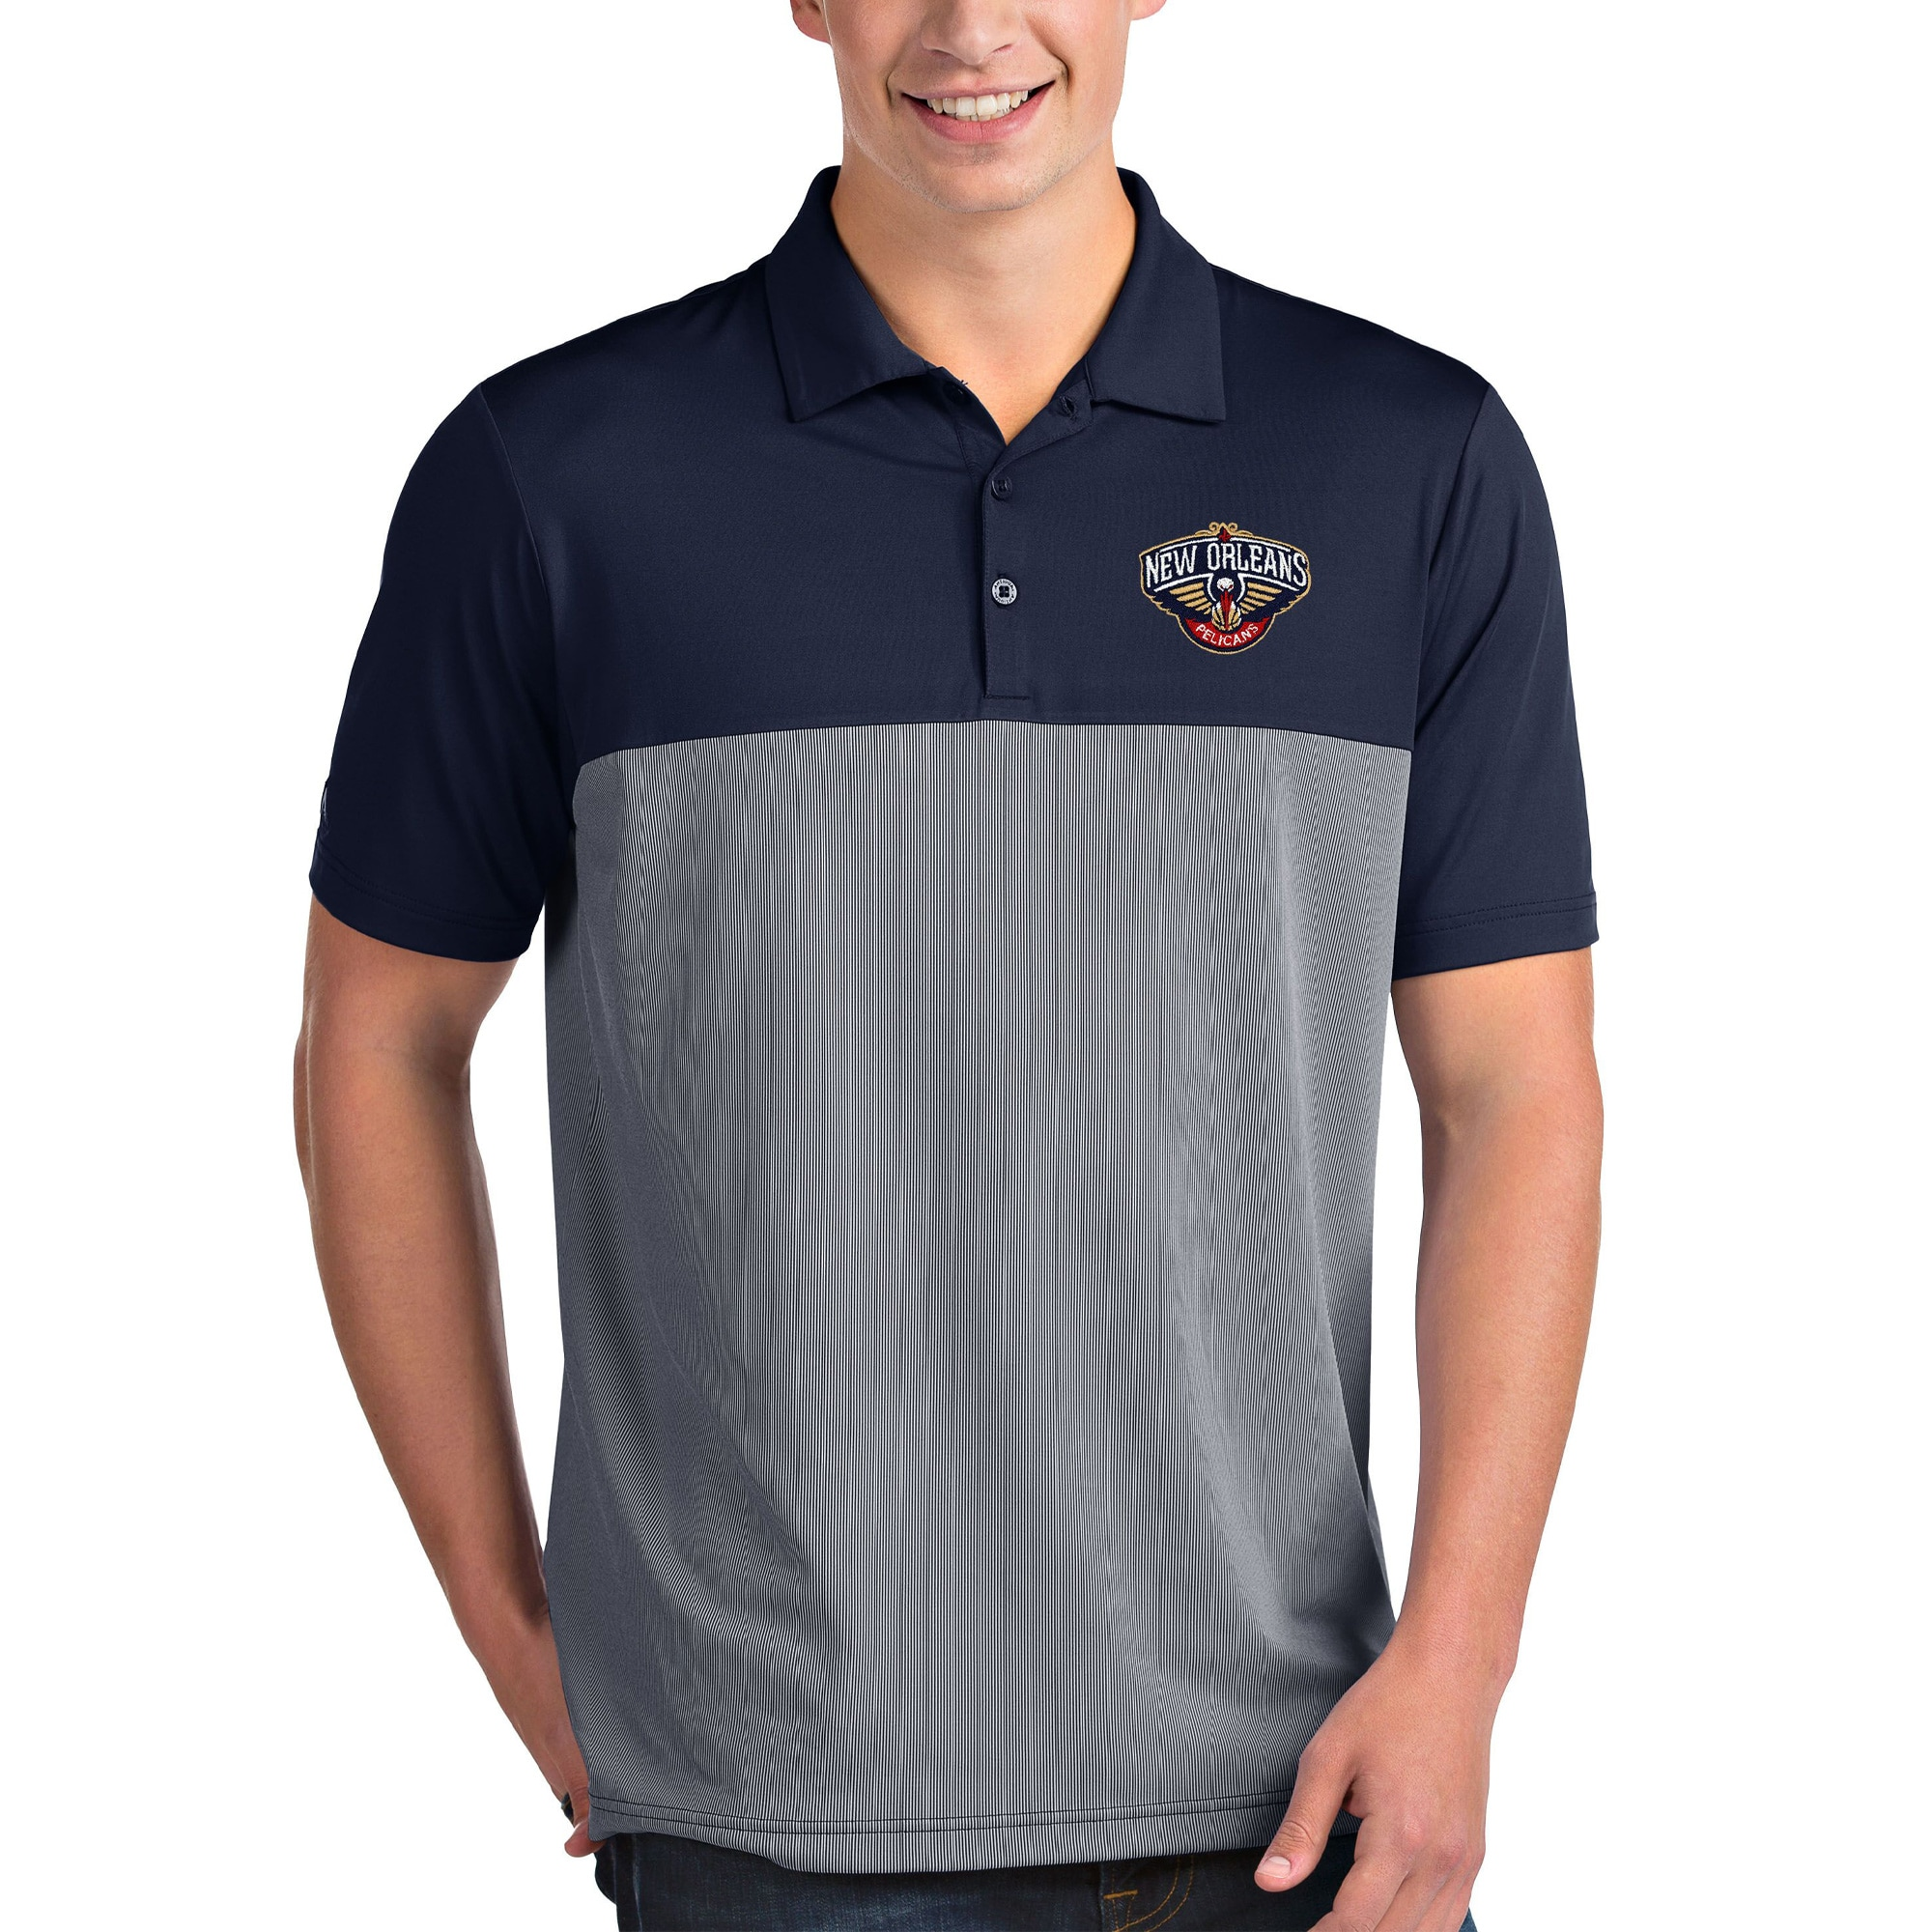 New Orleans Pelicans Antigua Venture Polo - Navy/White